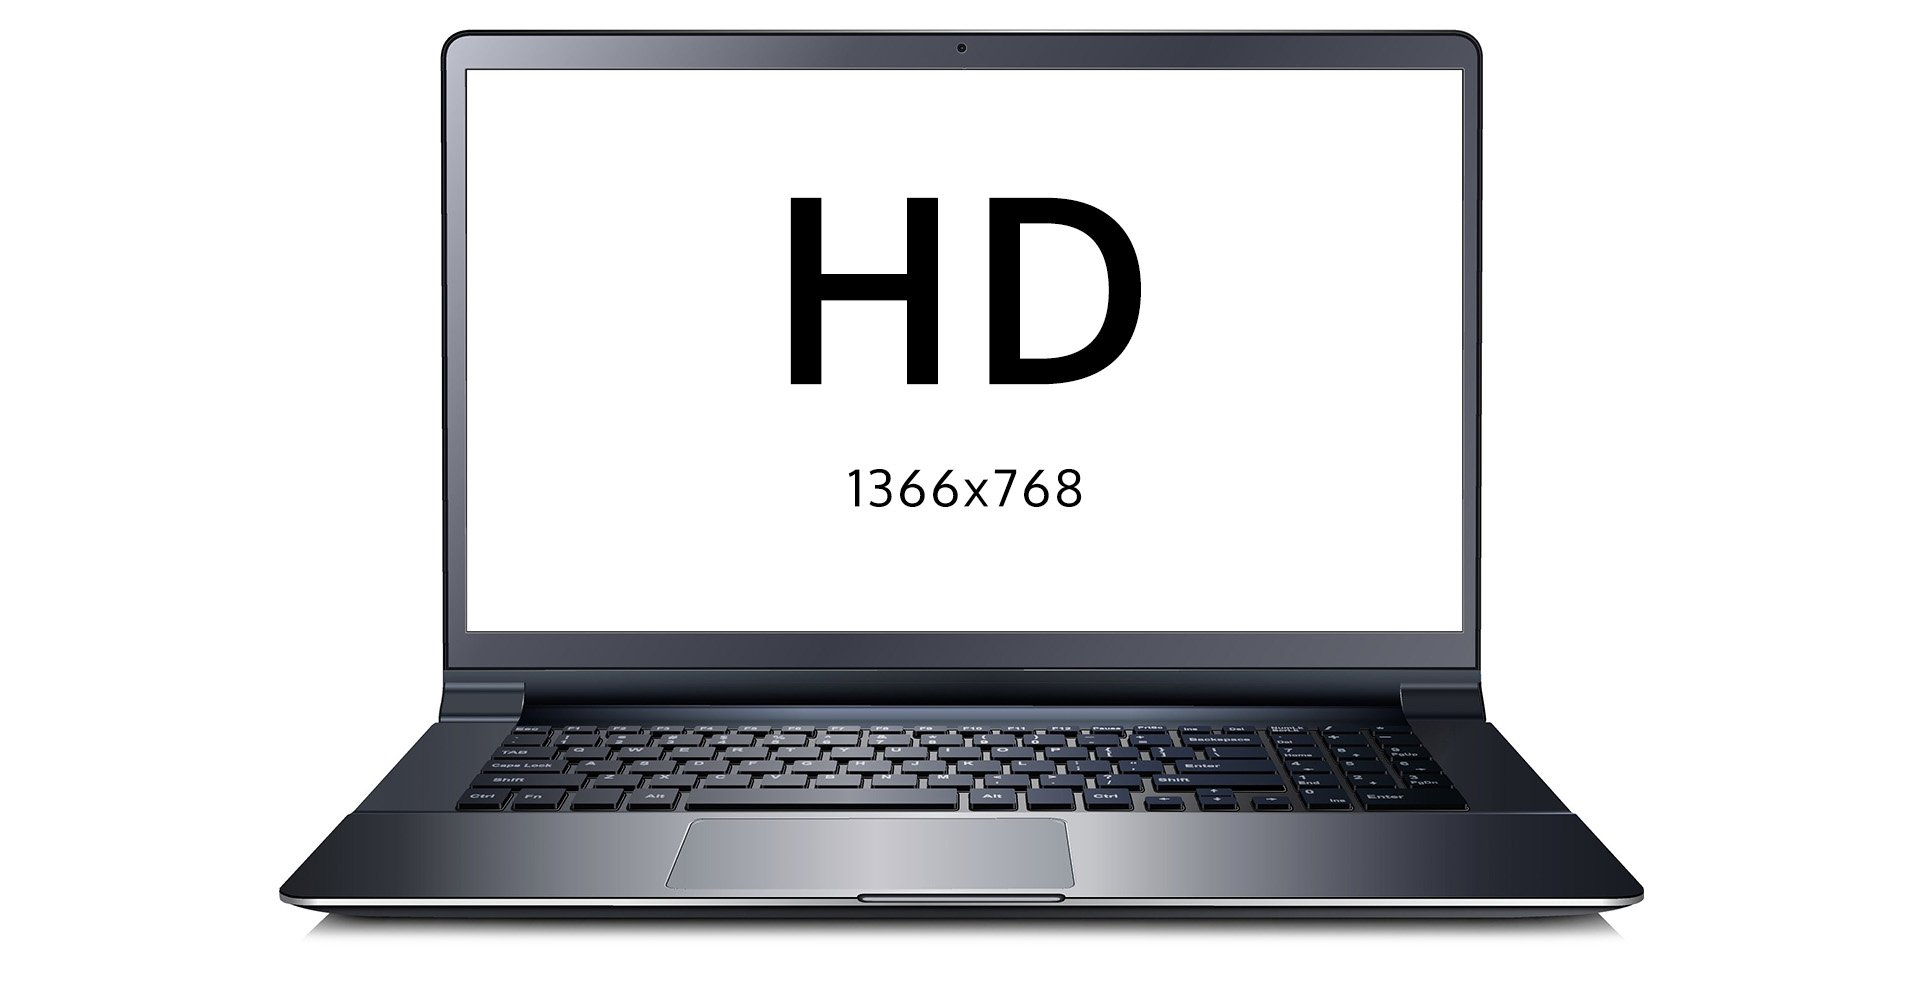 Fujitsu LifeBook A357 (S26391K425V300) 8 GB RAM/ 512 GB SSD/ 1TB HDD/ Windows 10 Pro                             HD 1366x768 resolutsioon